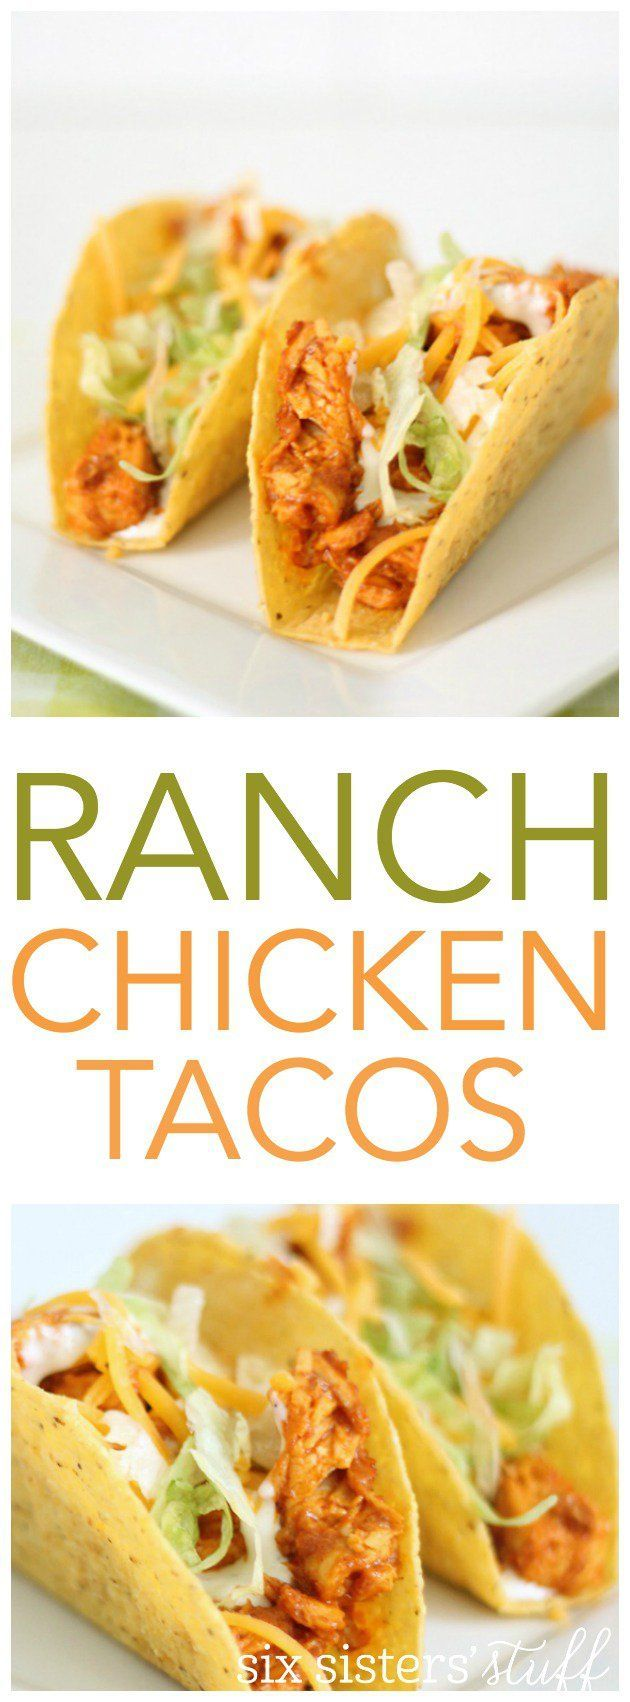 These easy homemade Ranch Chicken Tacos are a delicious twist to Taco Tuesday! Give them a try, you'll be happy you did!